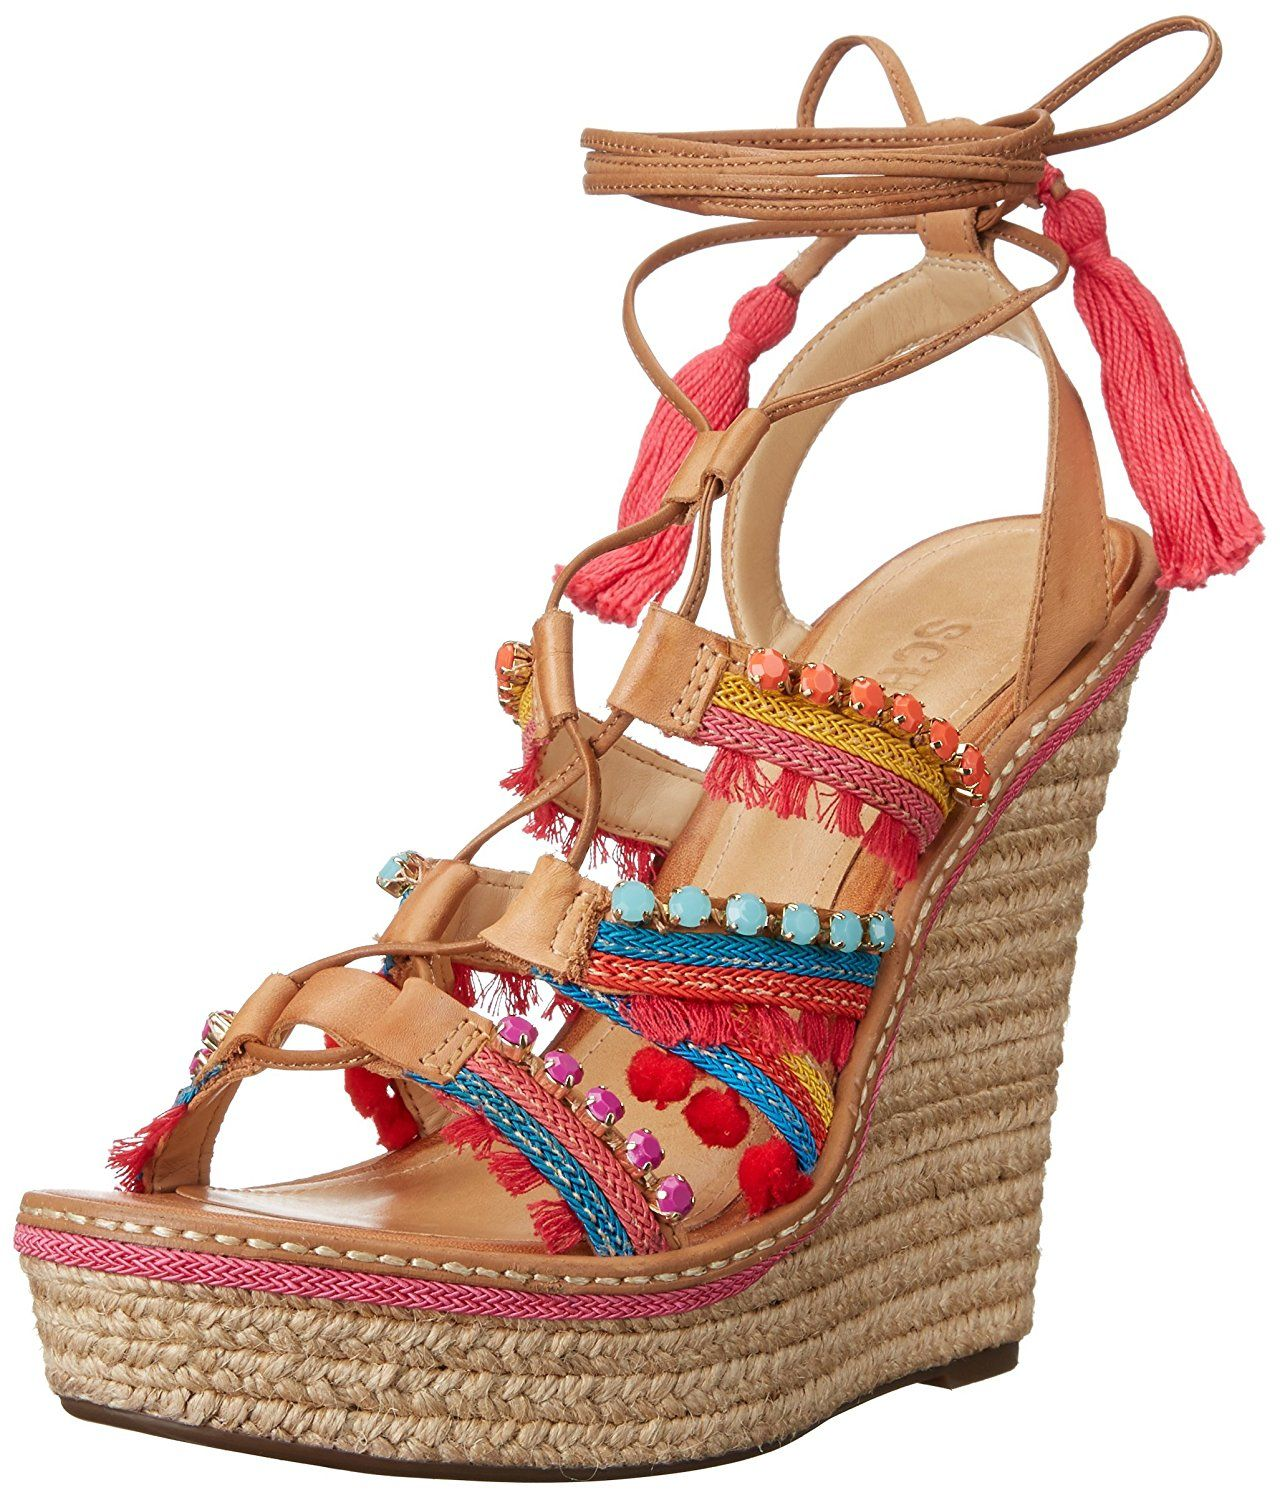 c7012be46372fd Schutz Women s Mella Espadrille Wedge Sandal -- Insider s special review  you can t miss. Read more   Wedge sandals